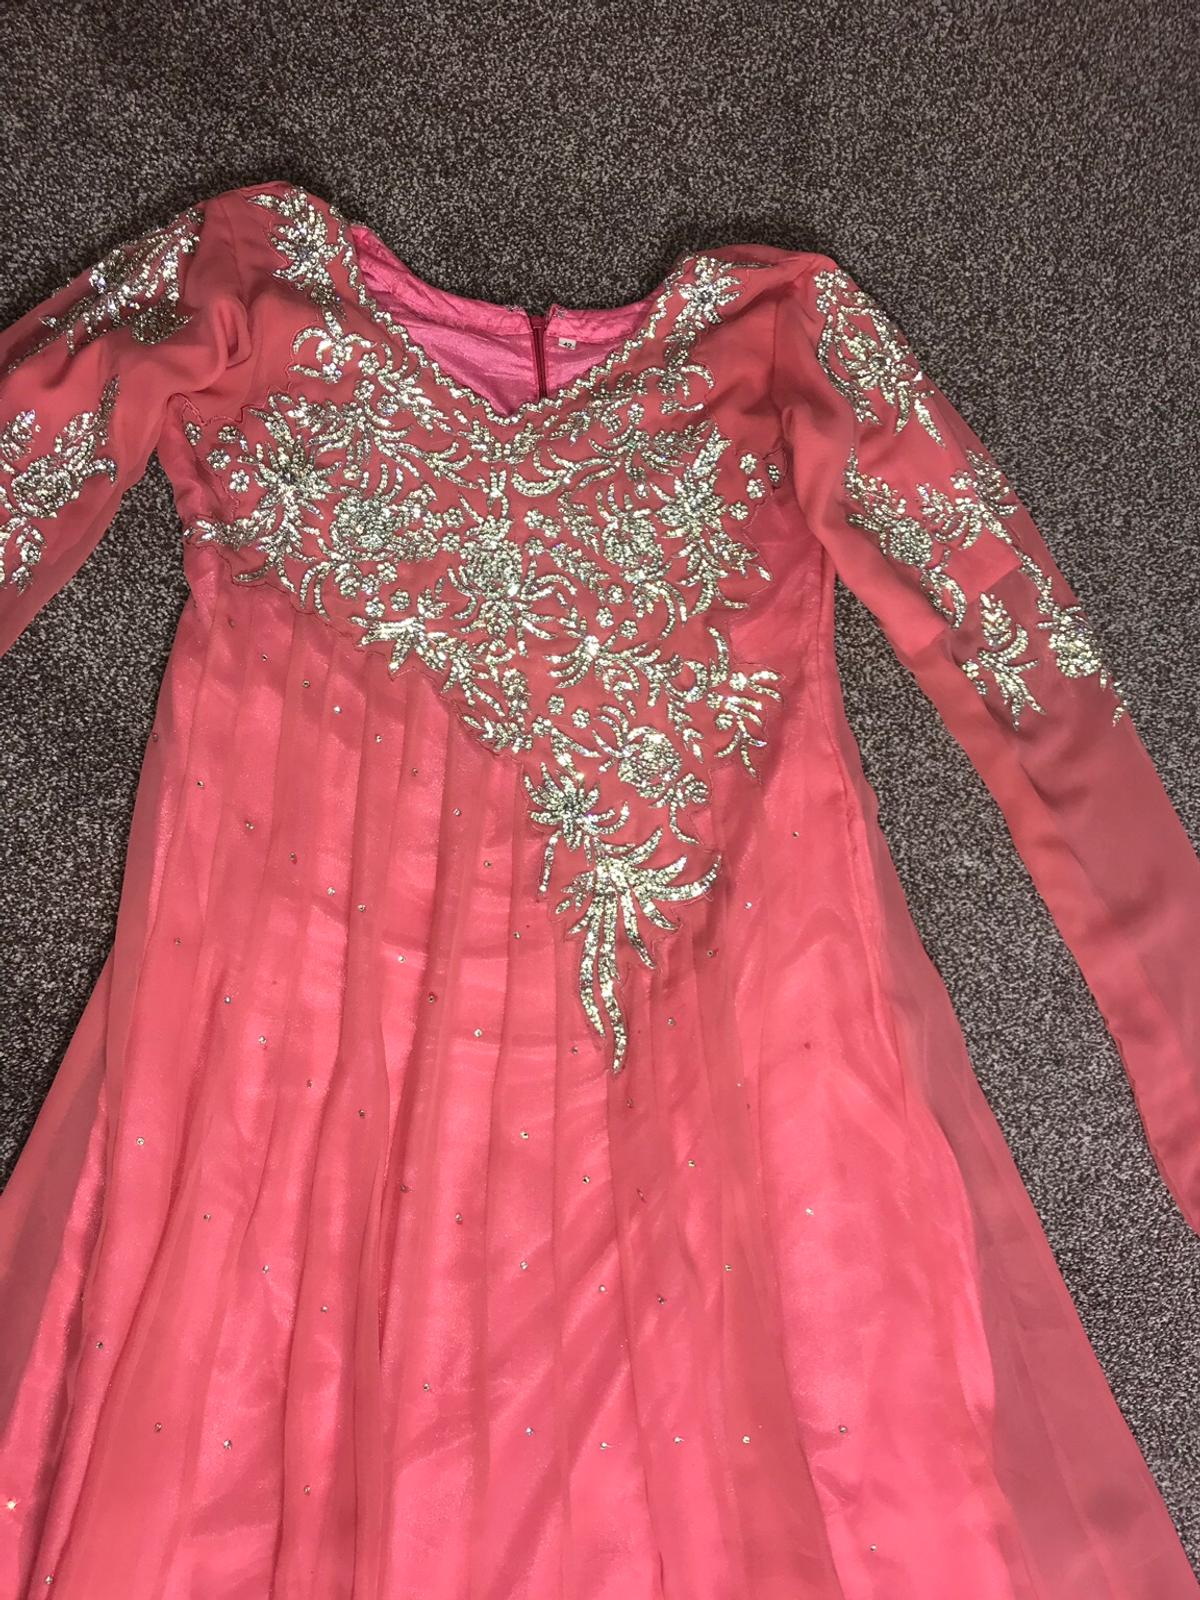 embroidered peach Dress with silver diamonds on the front and the back Also has silver diamonds on the arms Comes with a scarf and trousers Only been worn a few times In great condition Message me for more information